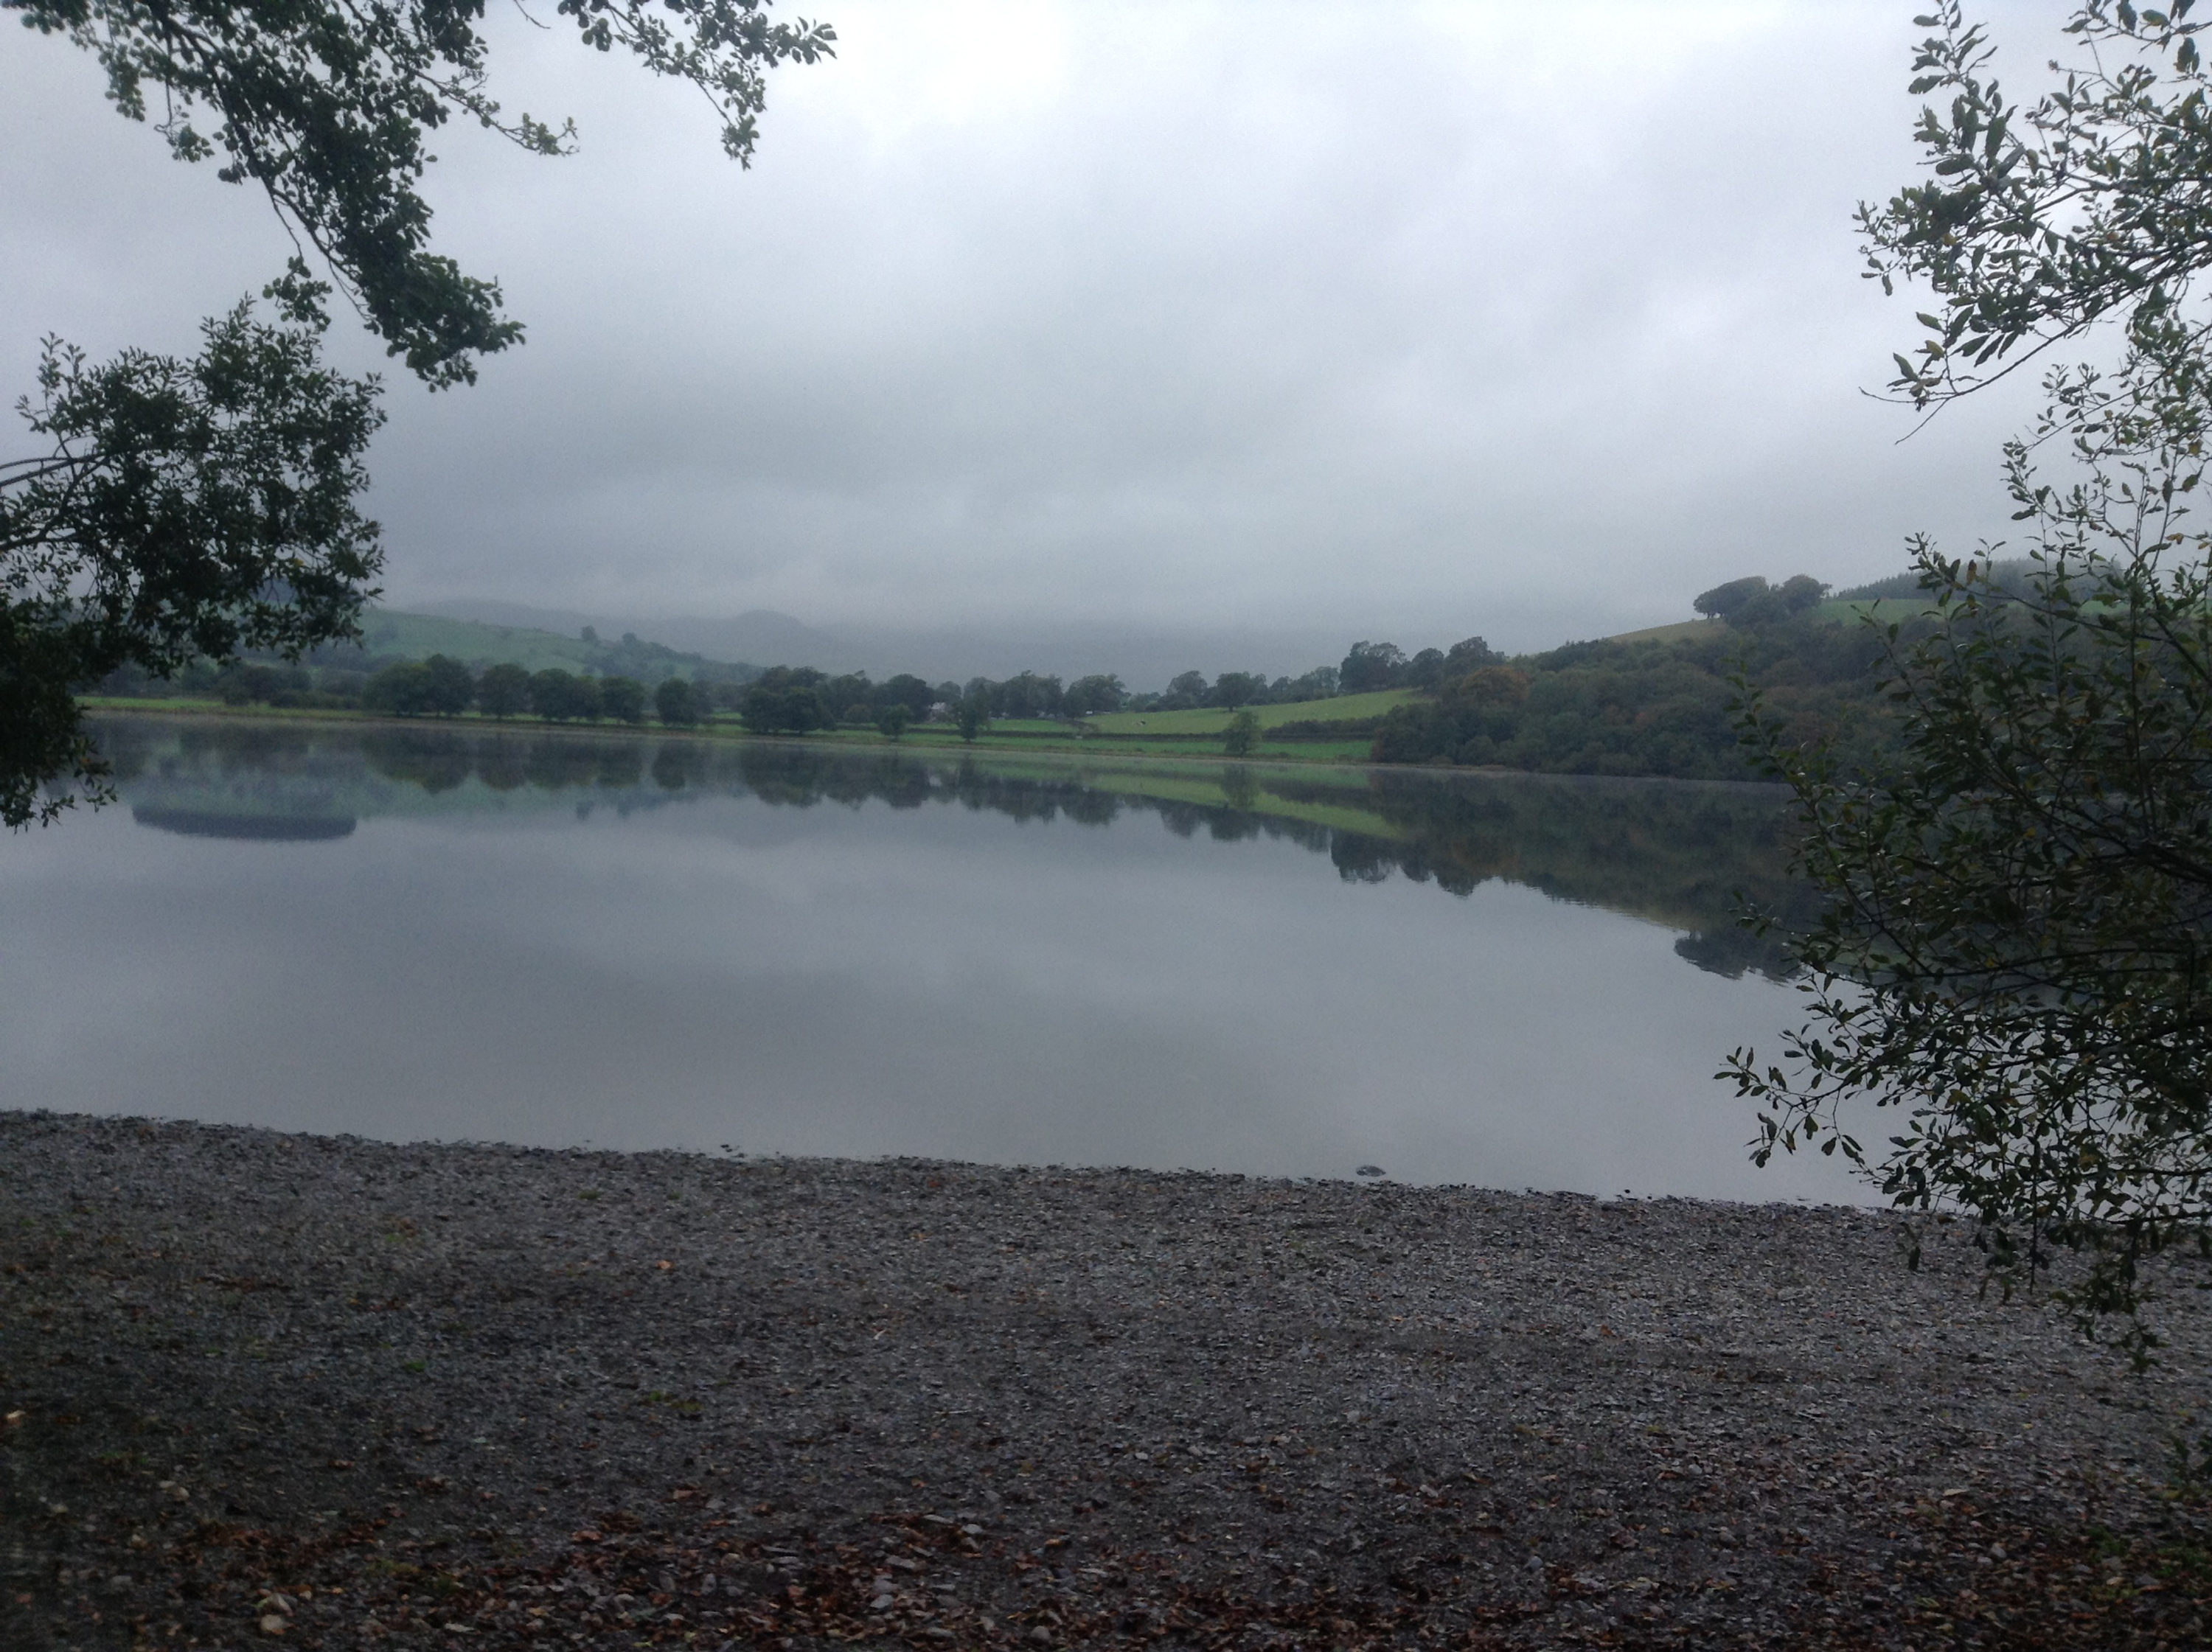 Grey sky, the green hills reflected in the still waters of the lake